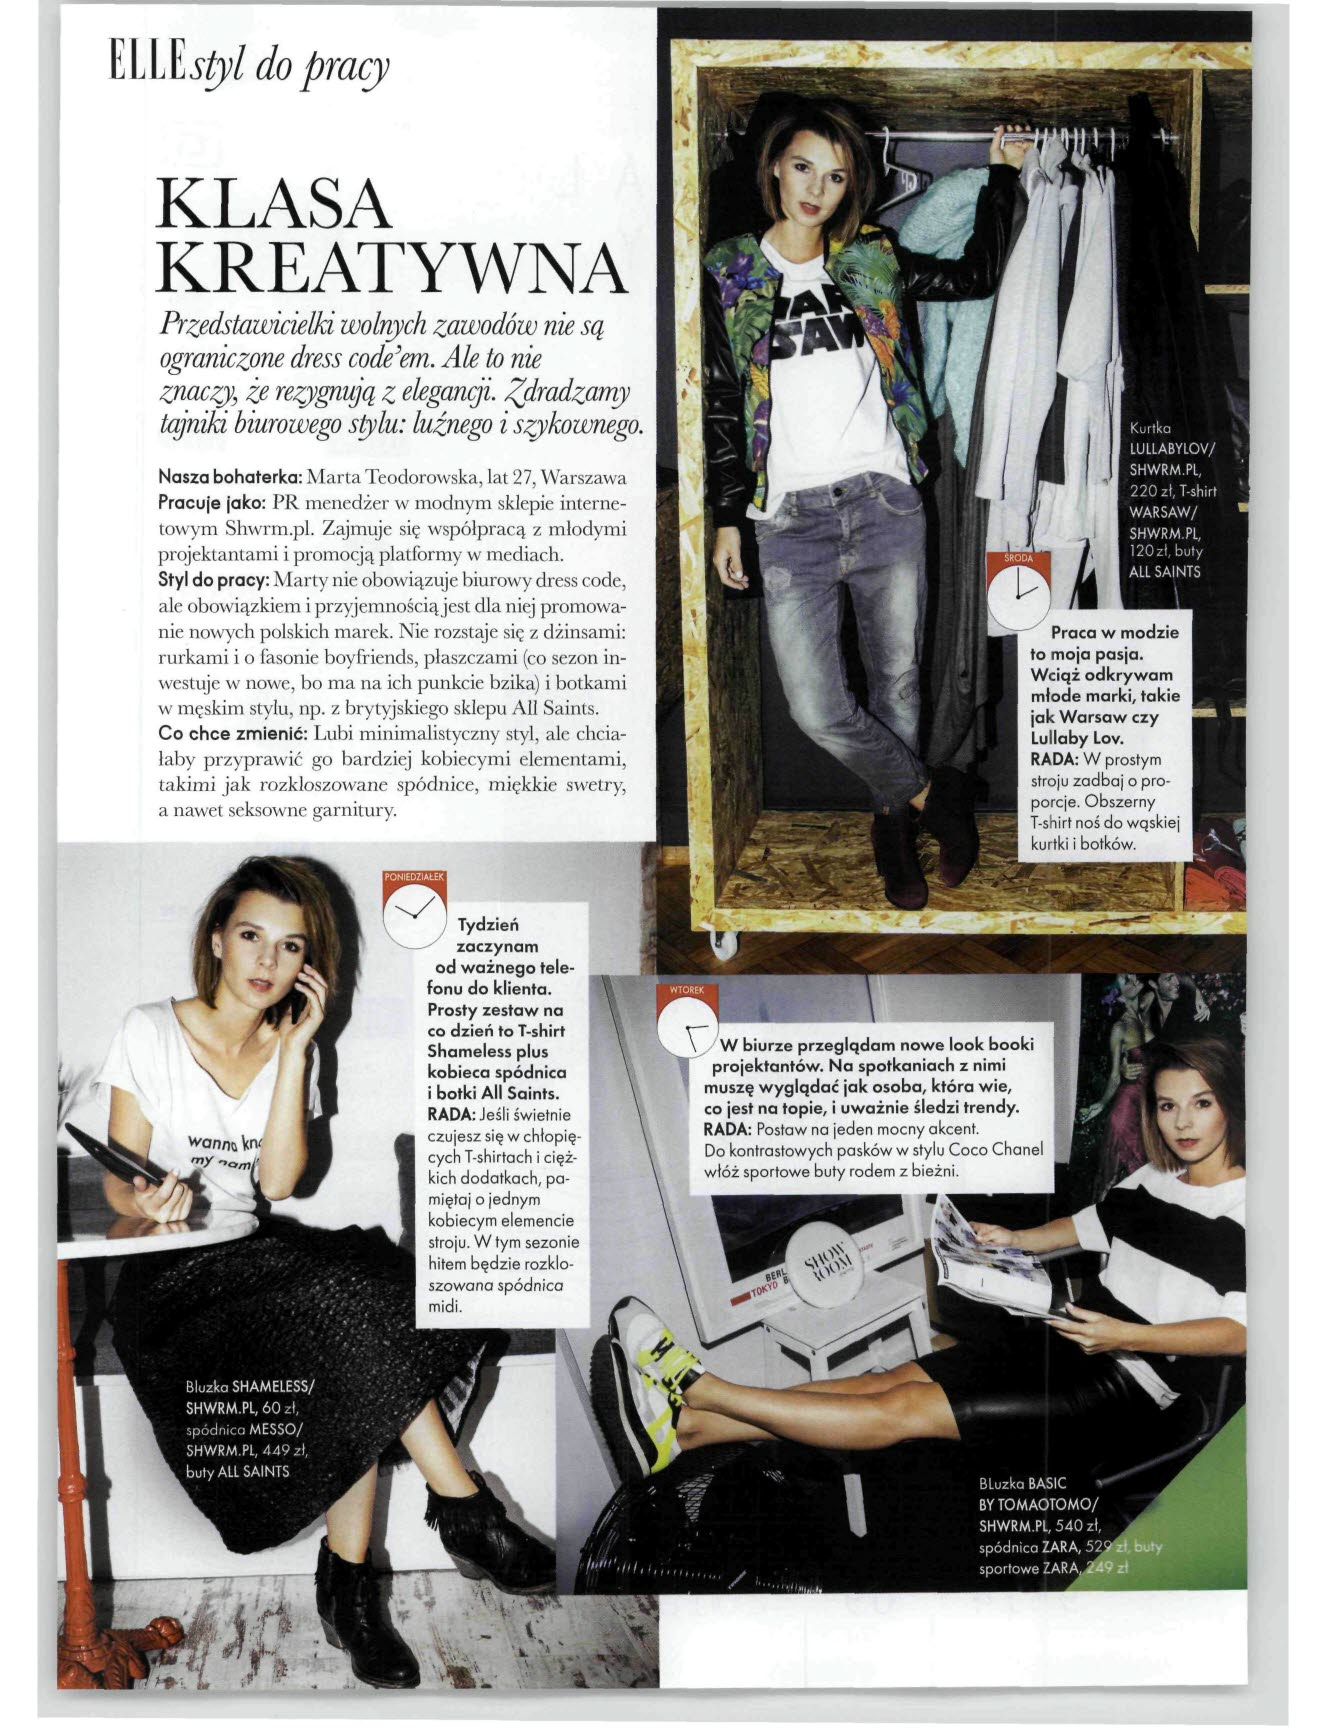 WAR SAW T-shirt featured in ELLE Magazine